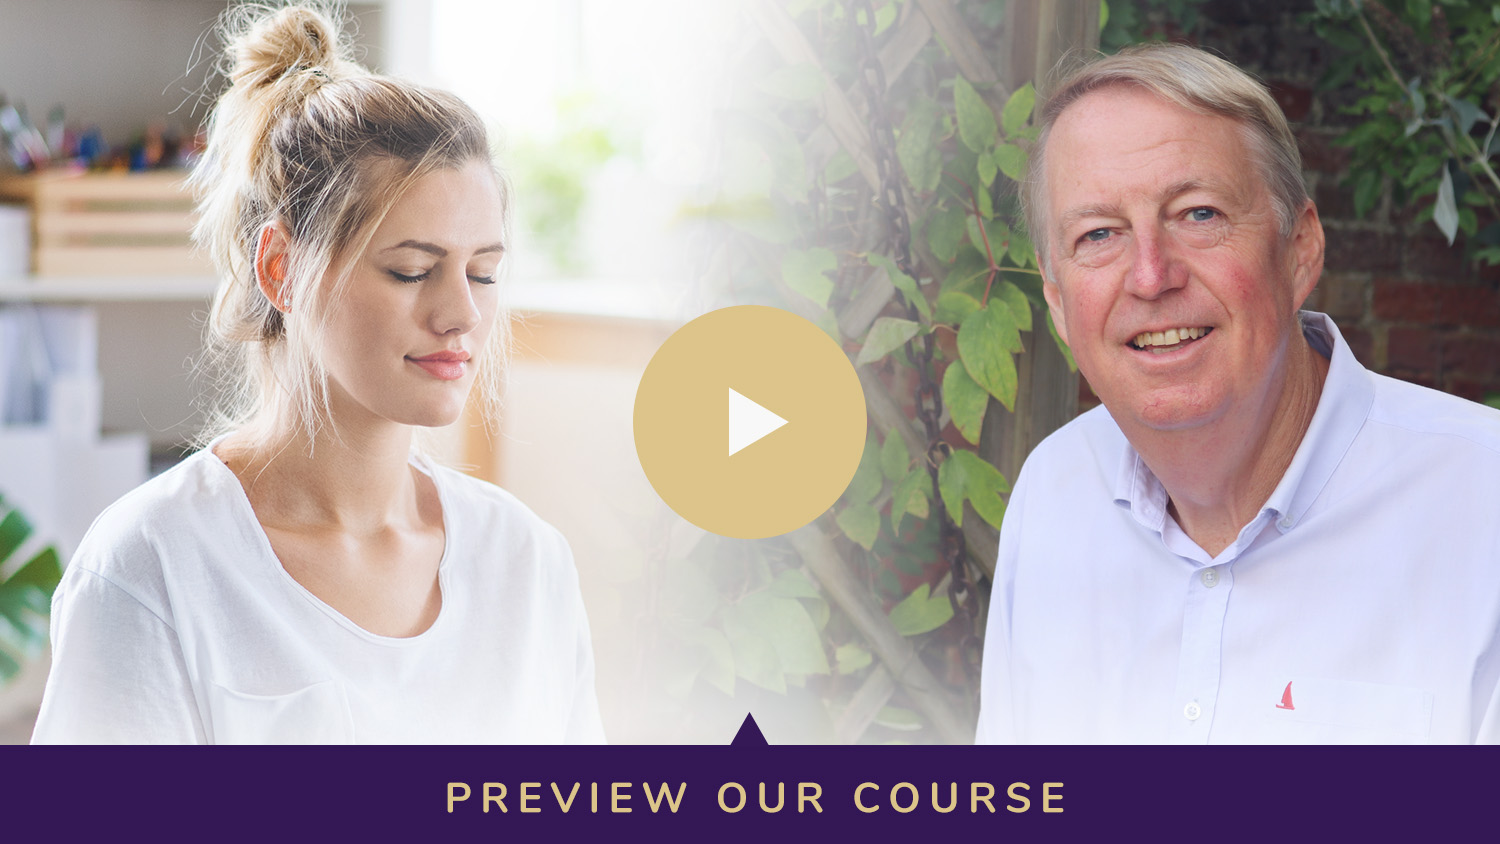 Preview video for our meditation course